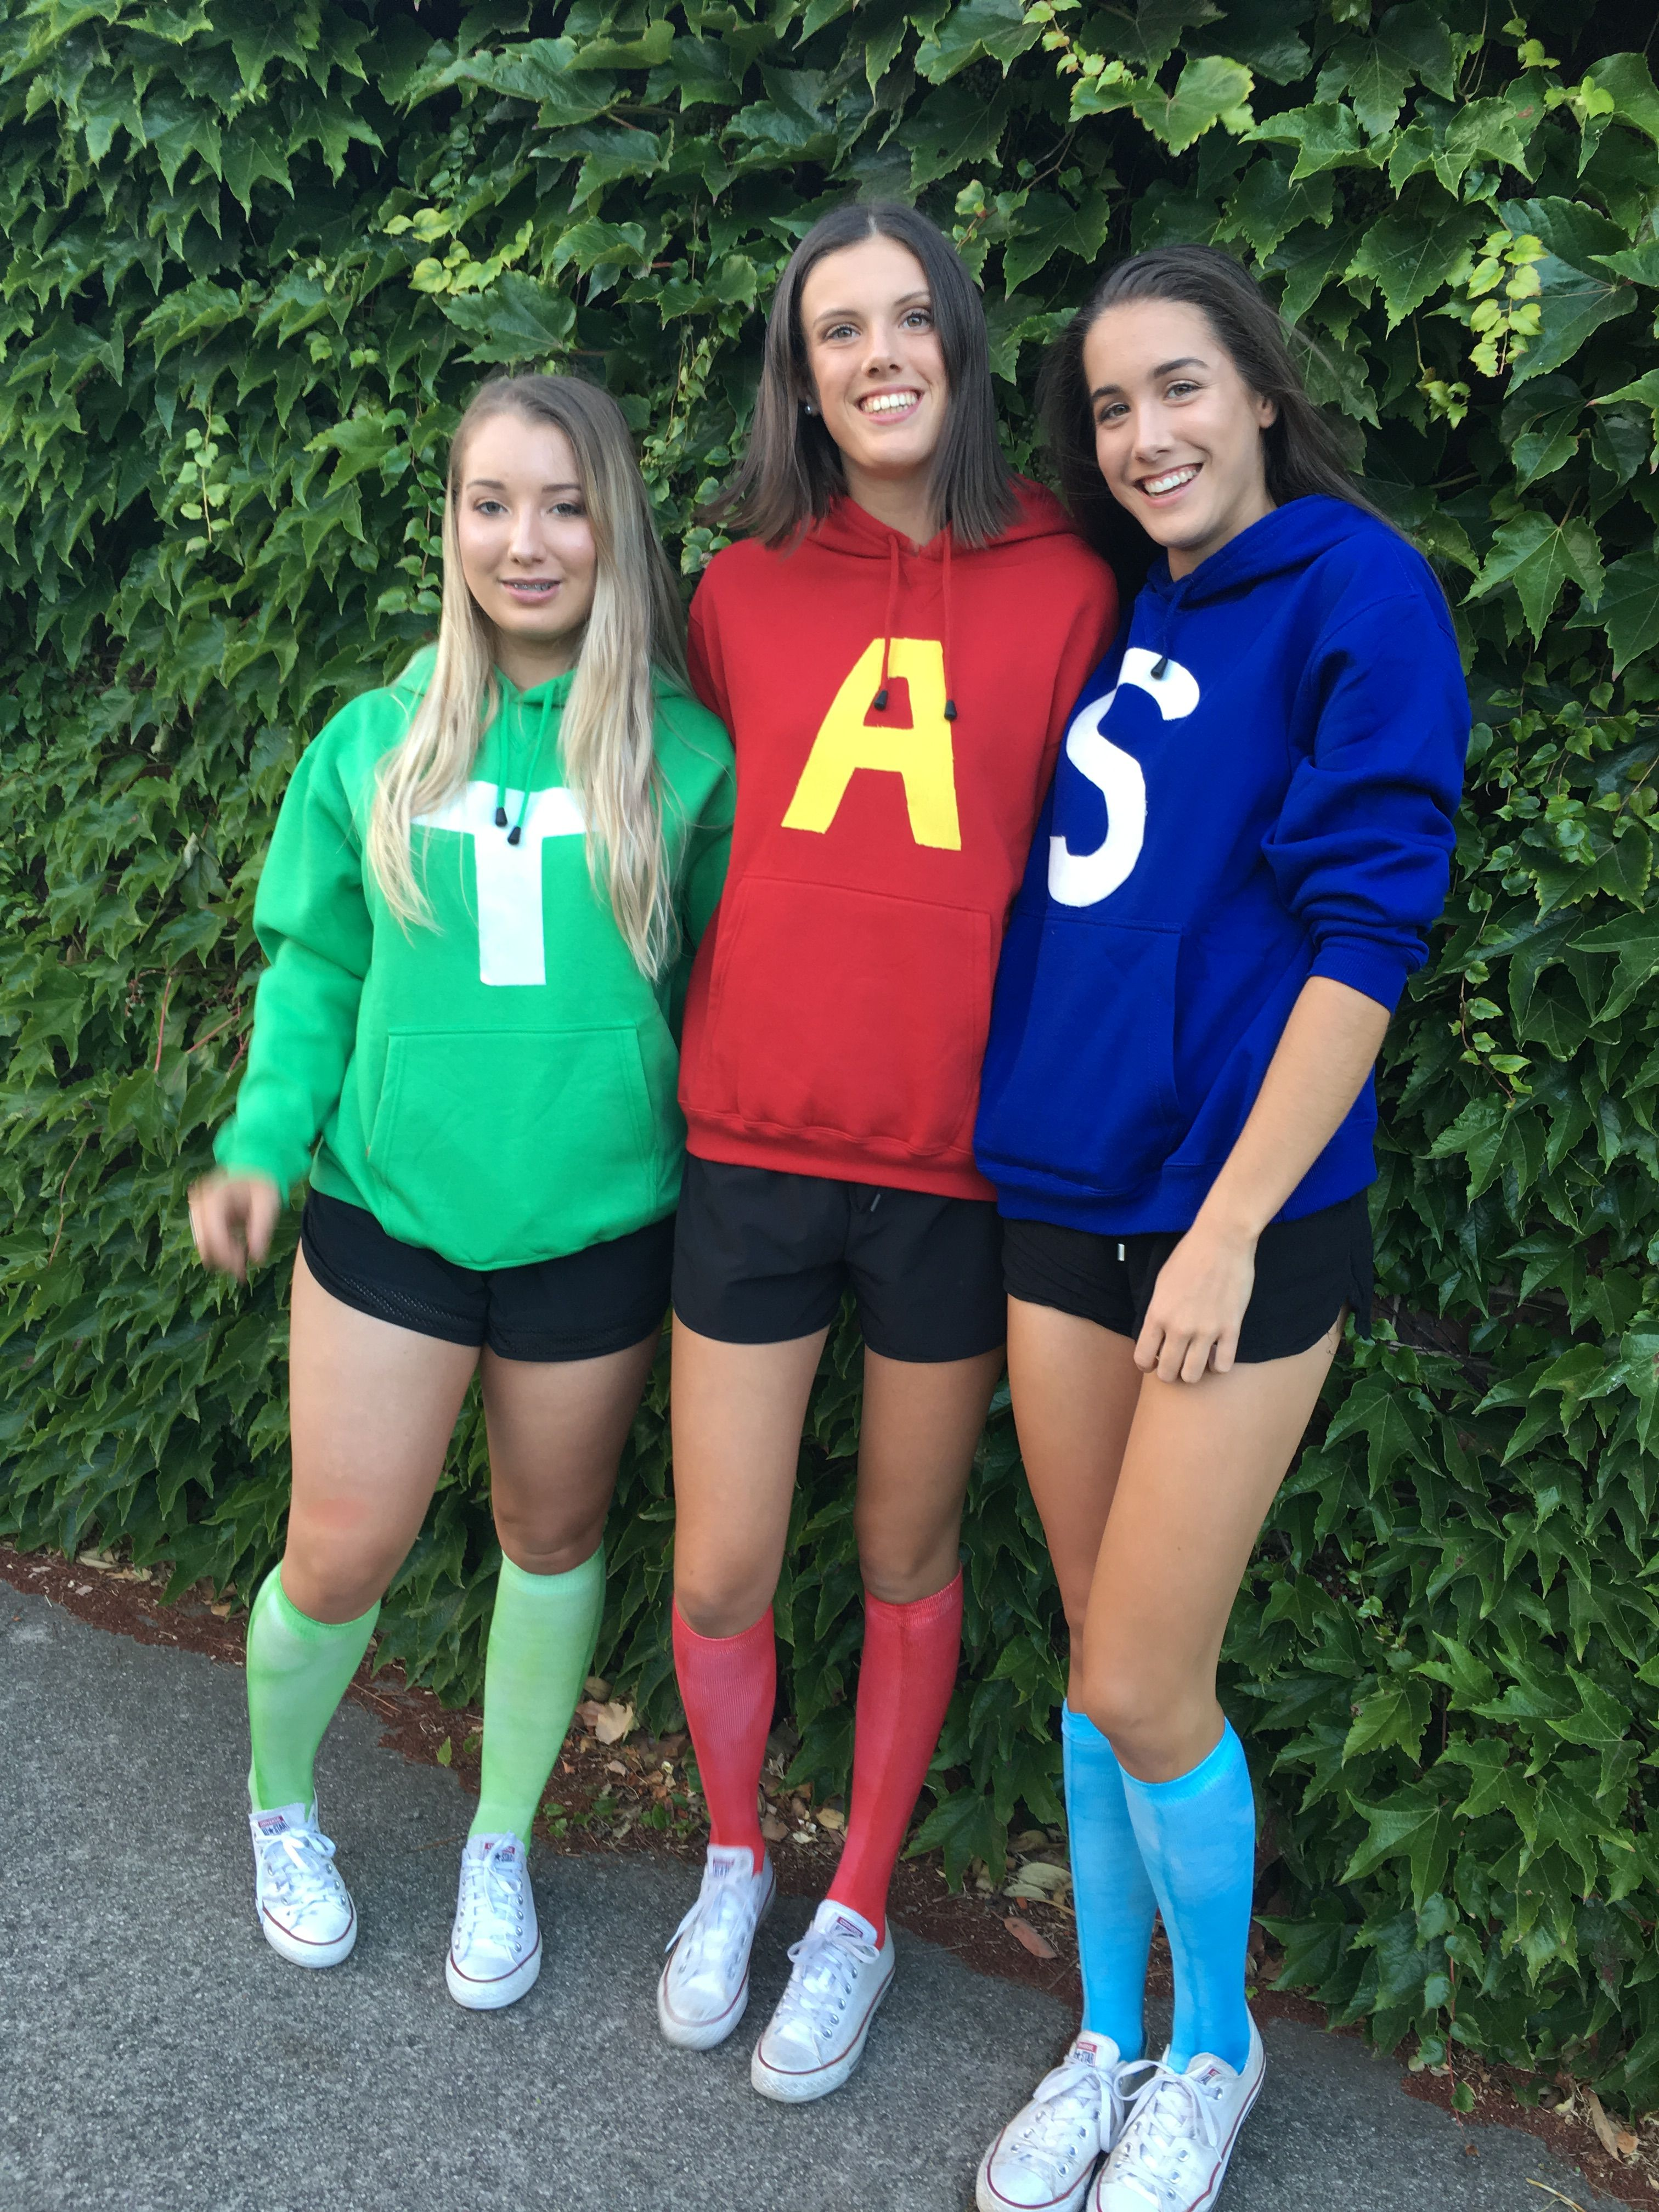 Alvin And The Chipmunks Costume Cool Halloween Costumes Duo Halloween Costumes Halloween Costumes Friends